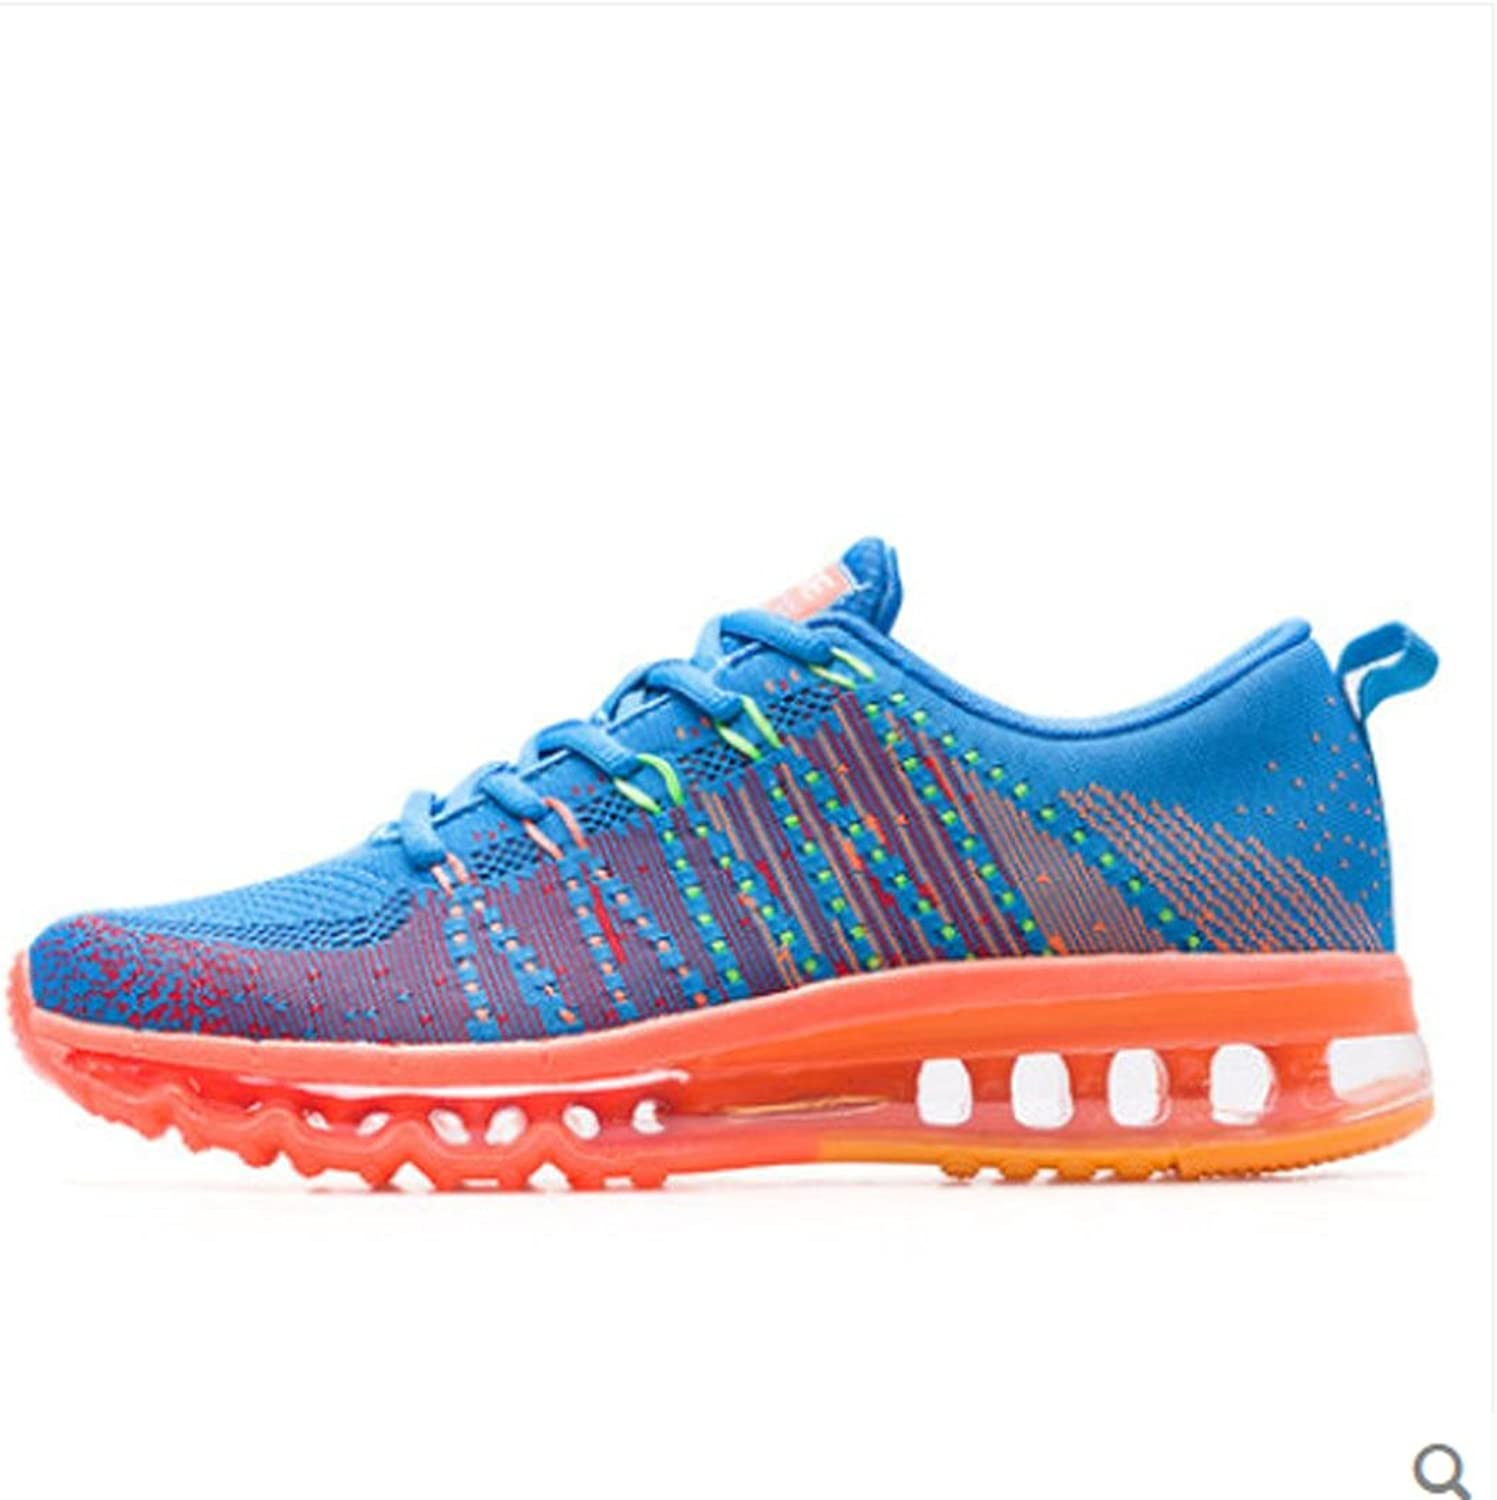 W&P Men's Rainbow braided line sports running in summer and autumn the whole Palm cushion running shoe